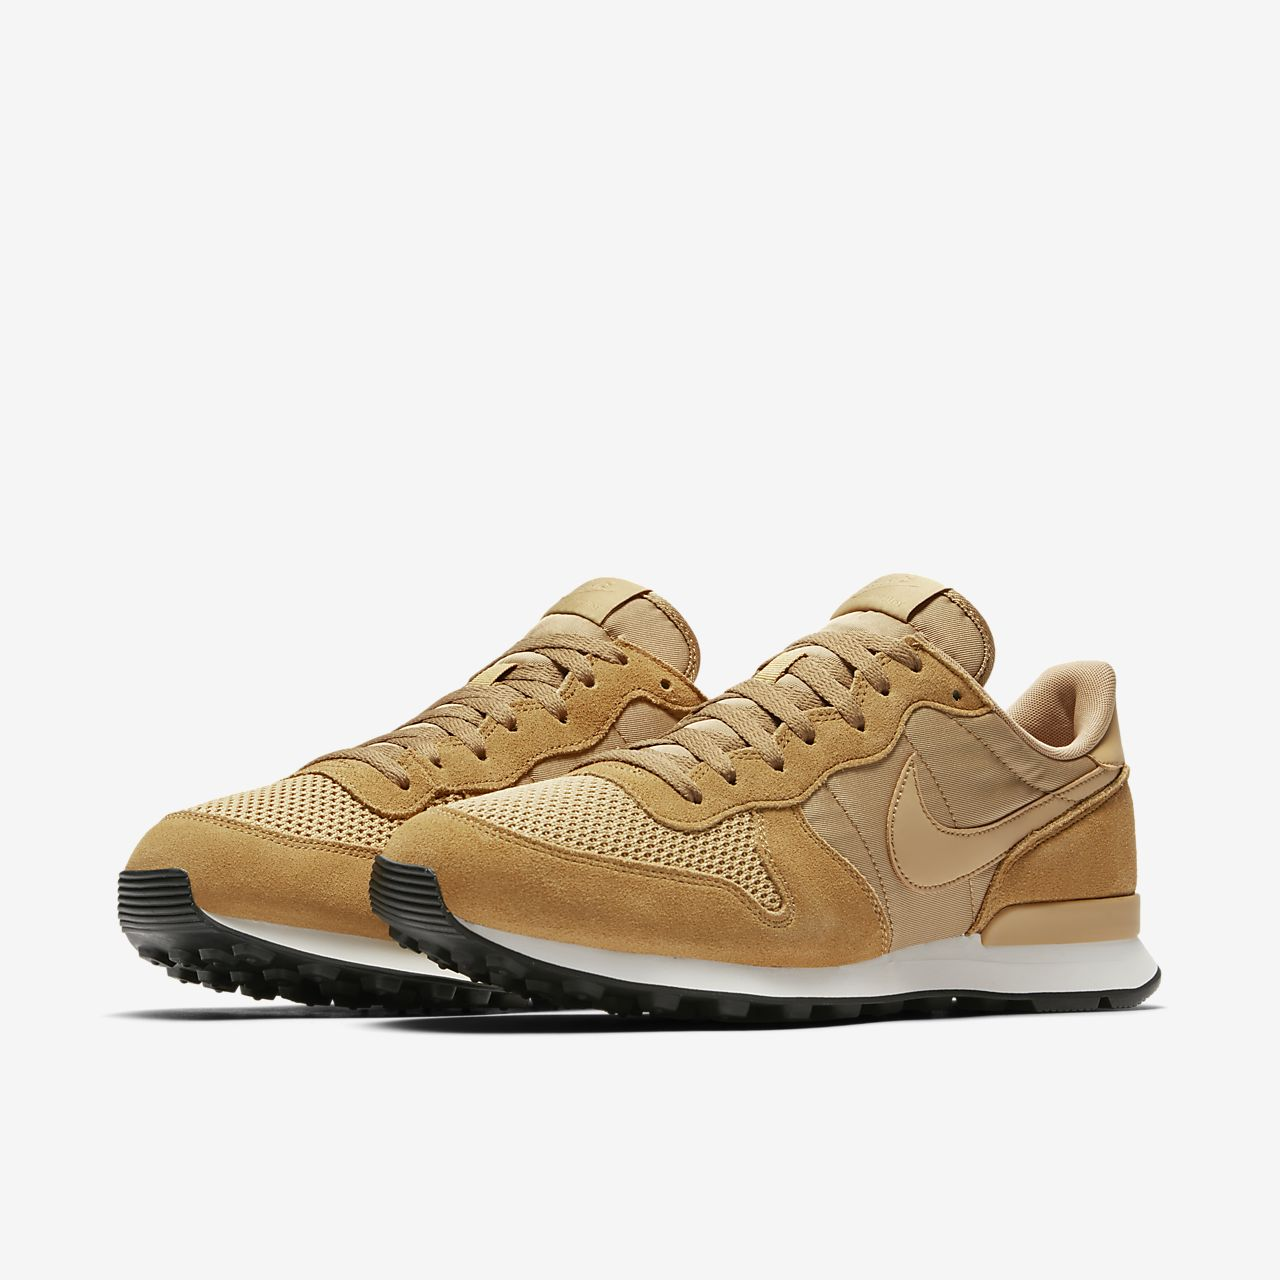 Low Resolution Nike Internationalist SE Men's Shoe Nike Internationalist SE  Men's Shoe